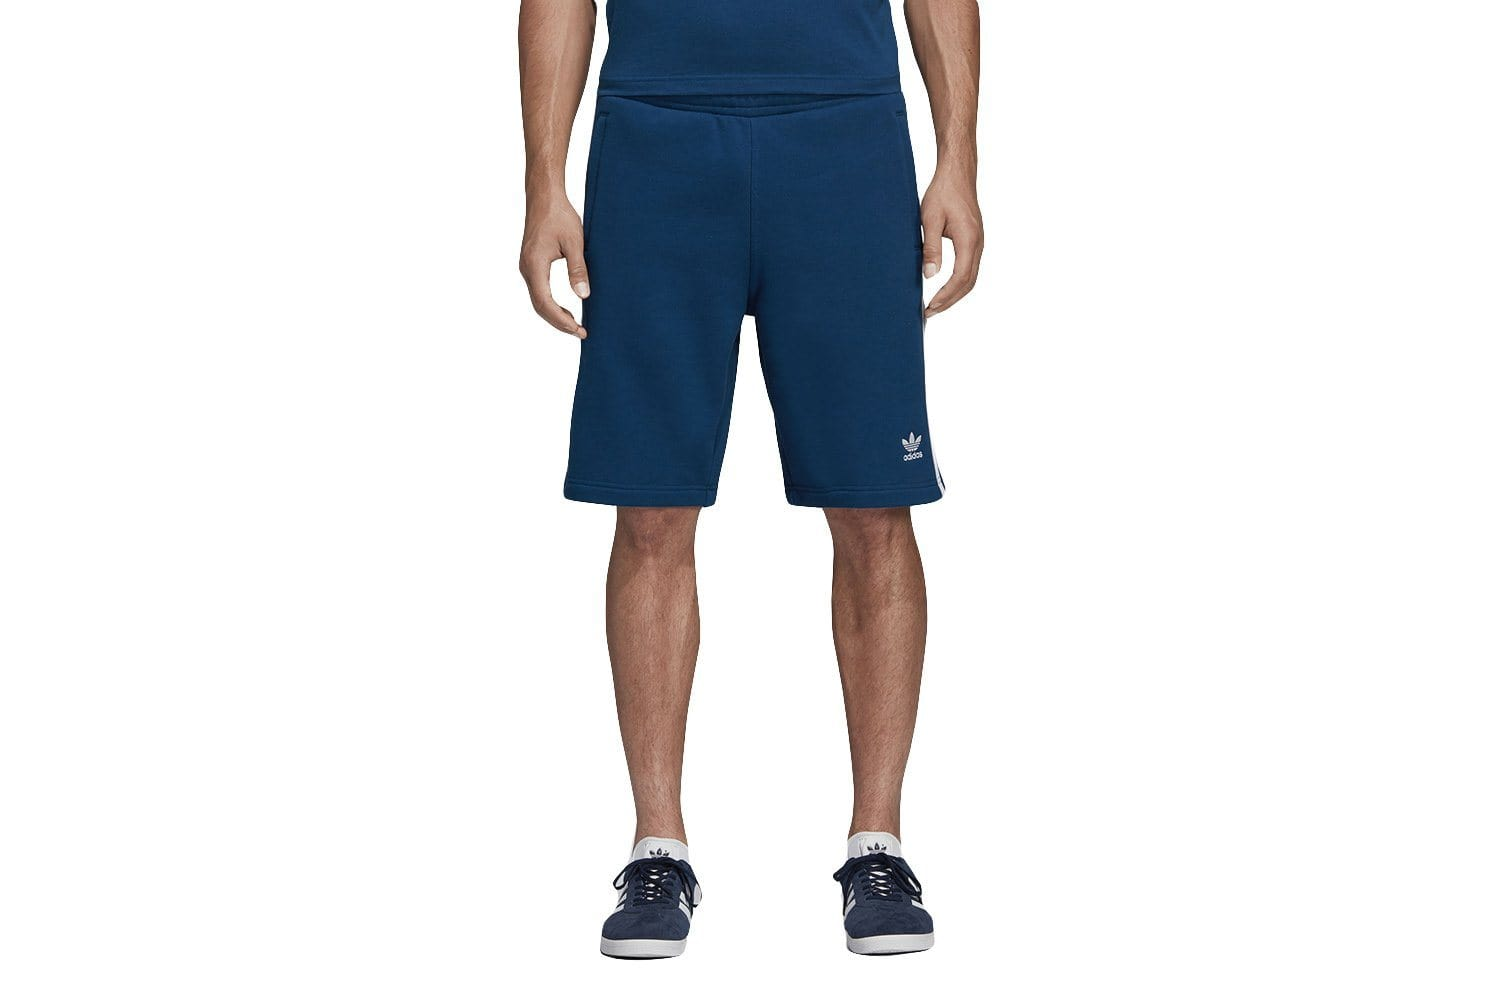 3 - Stripe Shorts - DV1526 MENS SOFTGOODS ADIDAS